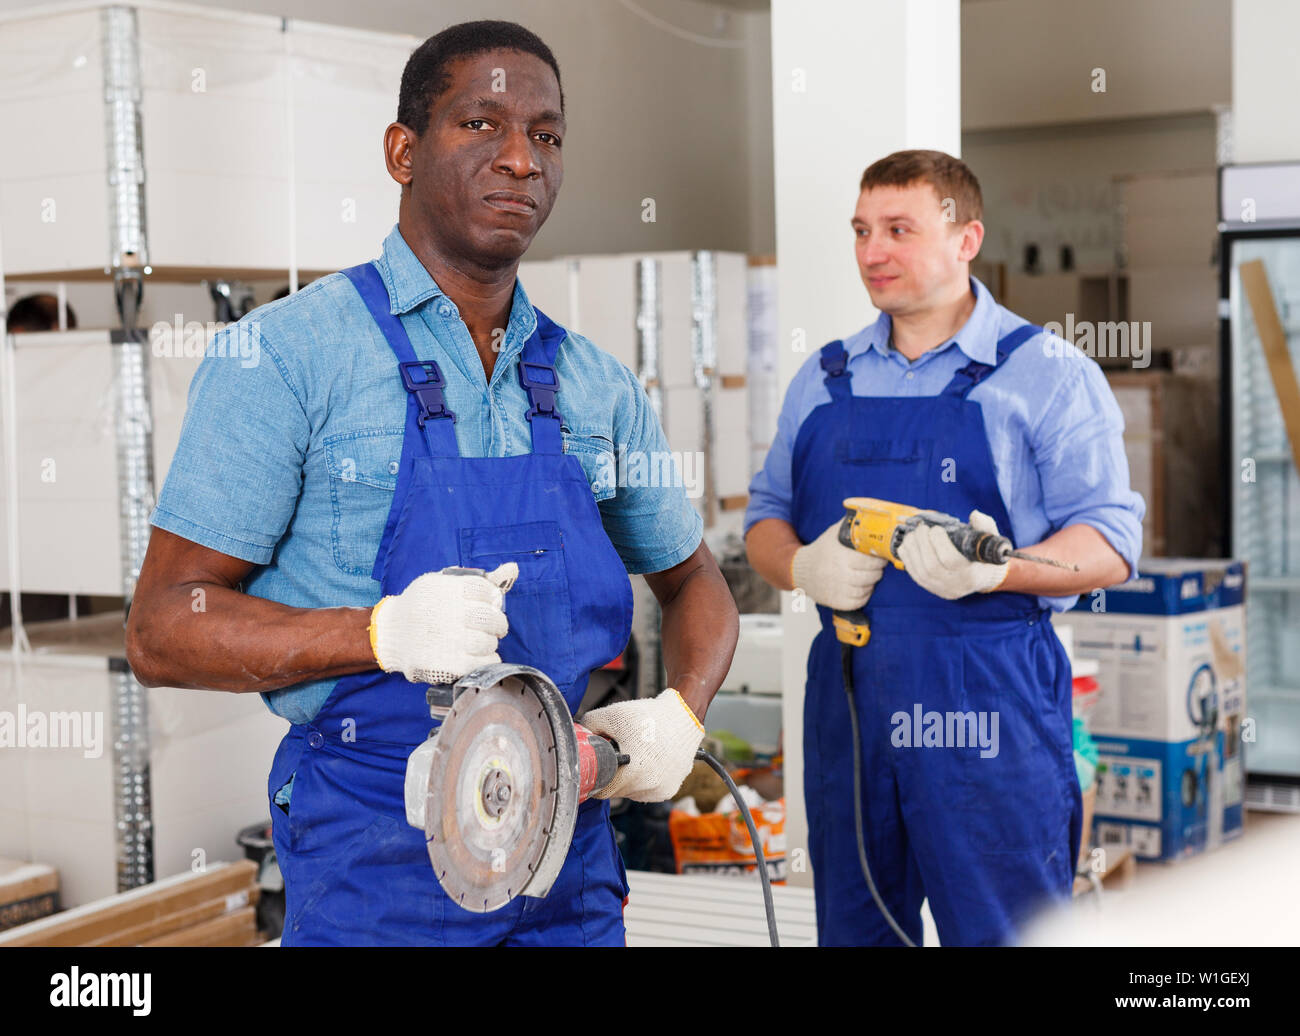 Confident African-American builder holding manual disc grinder, working with workmate at renovation indoors - Stock Image